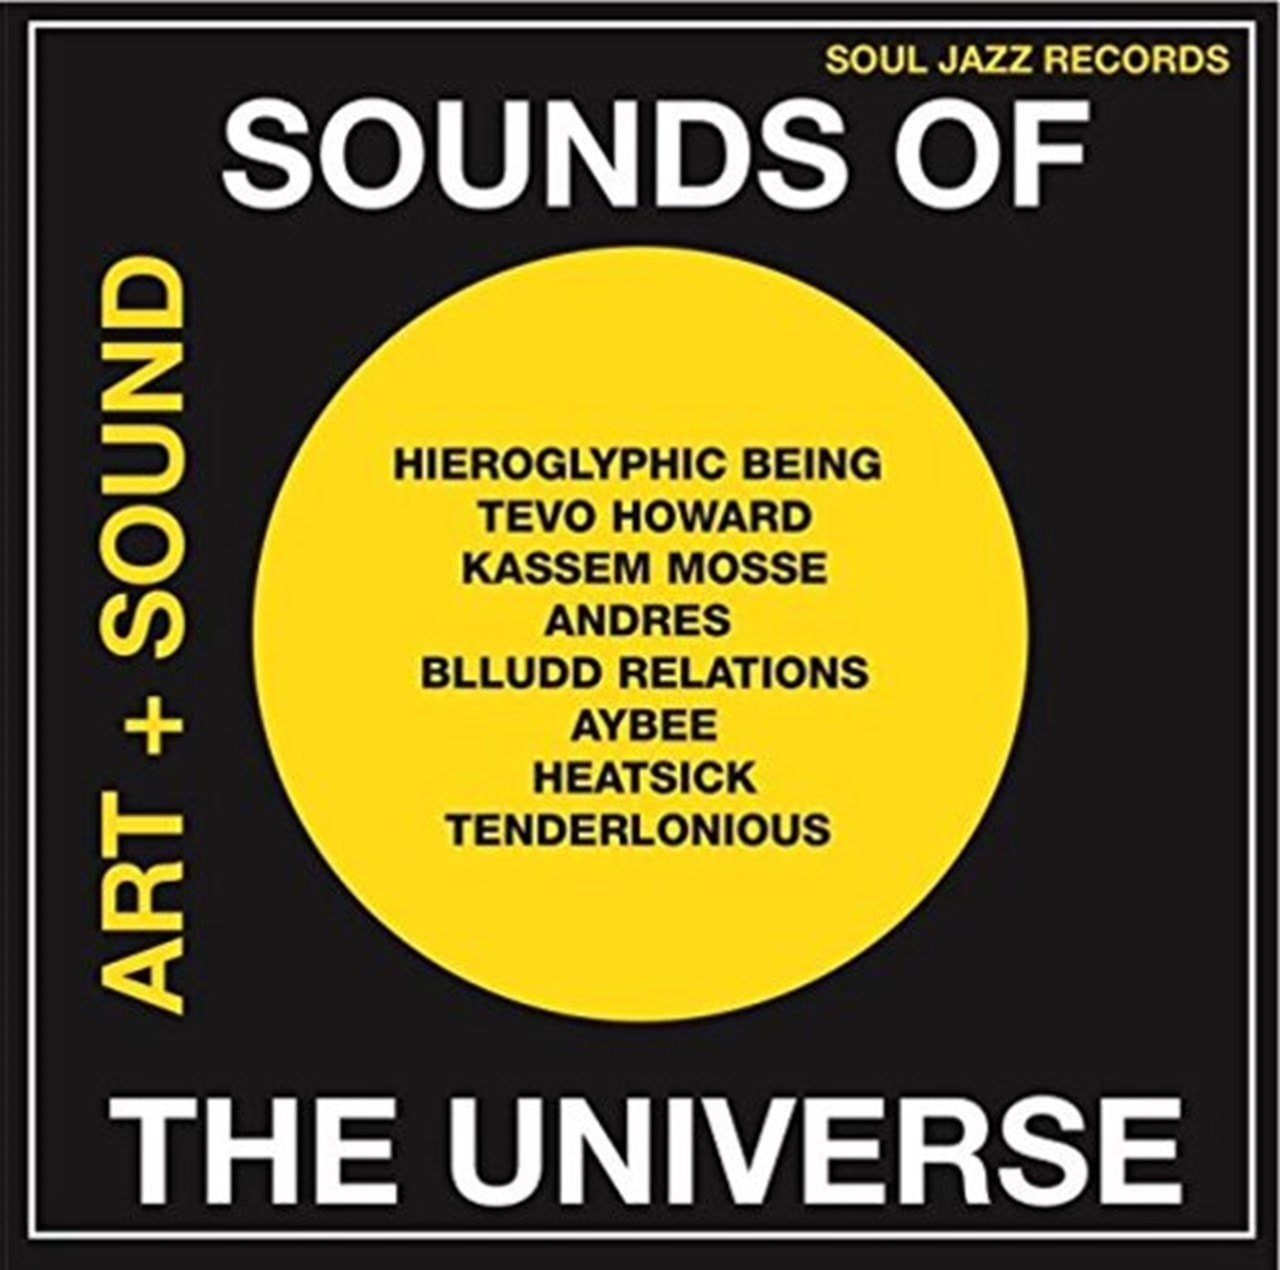 Sounds of the Universe: Art + Sound  2012-15 - 1